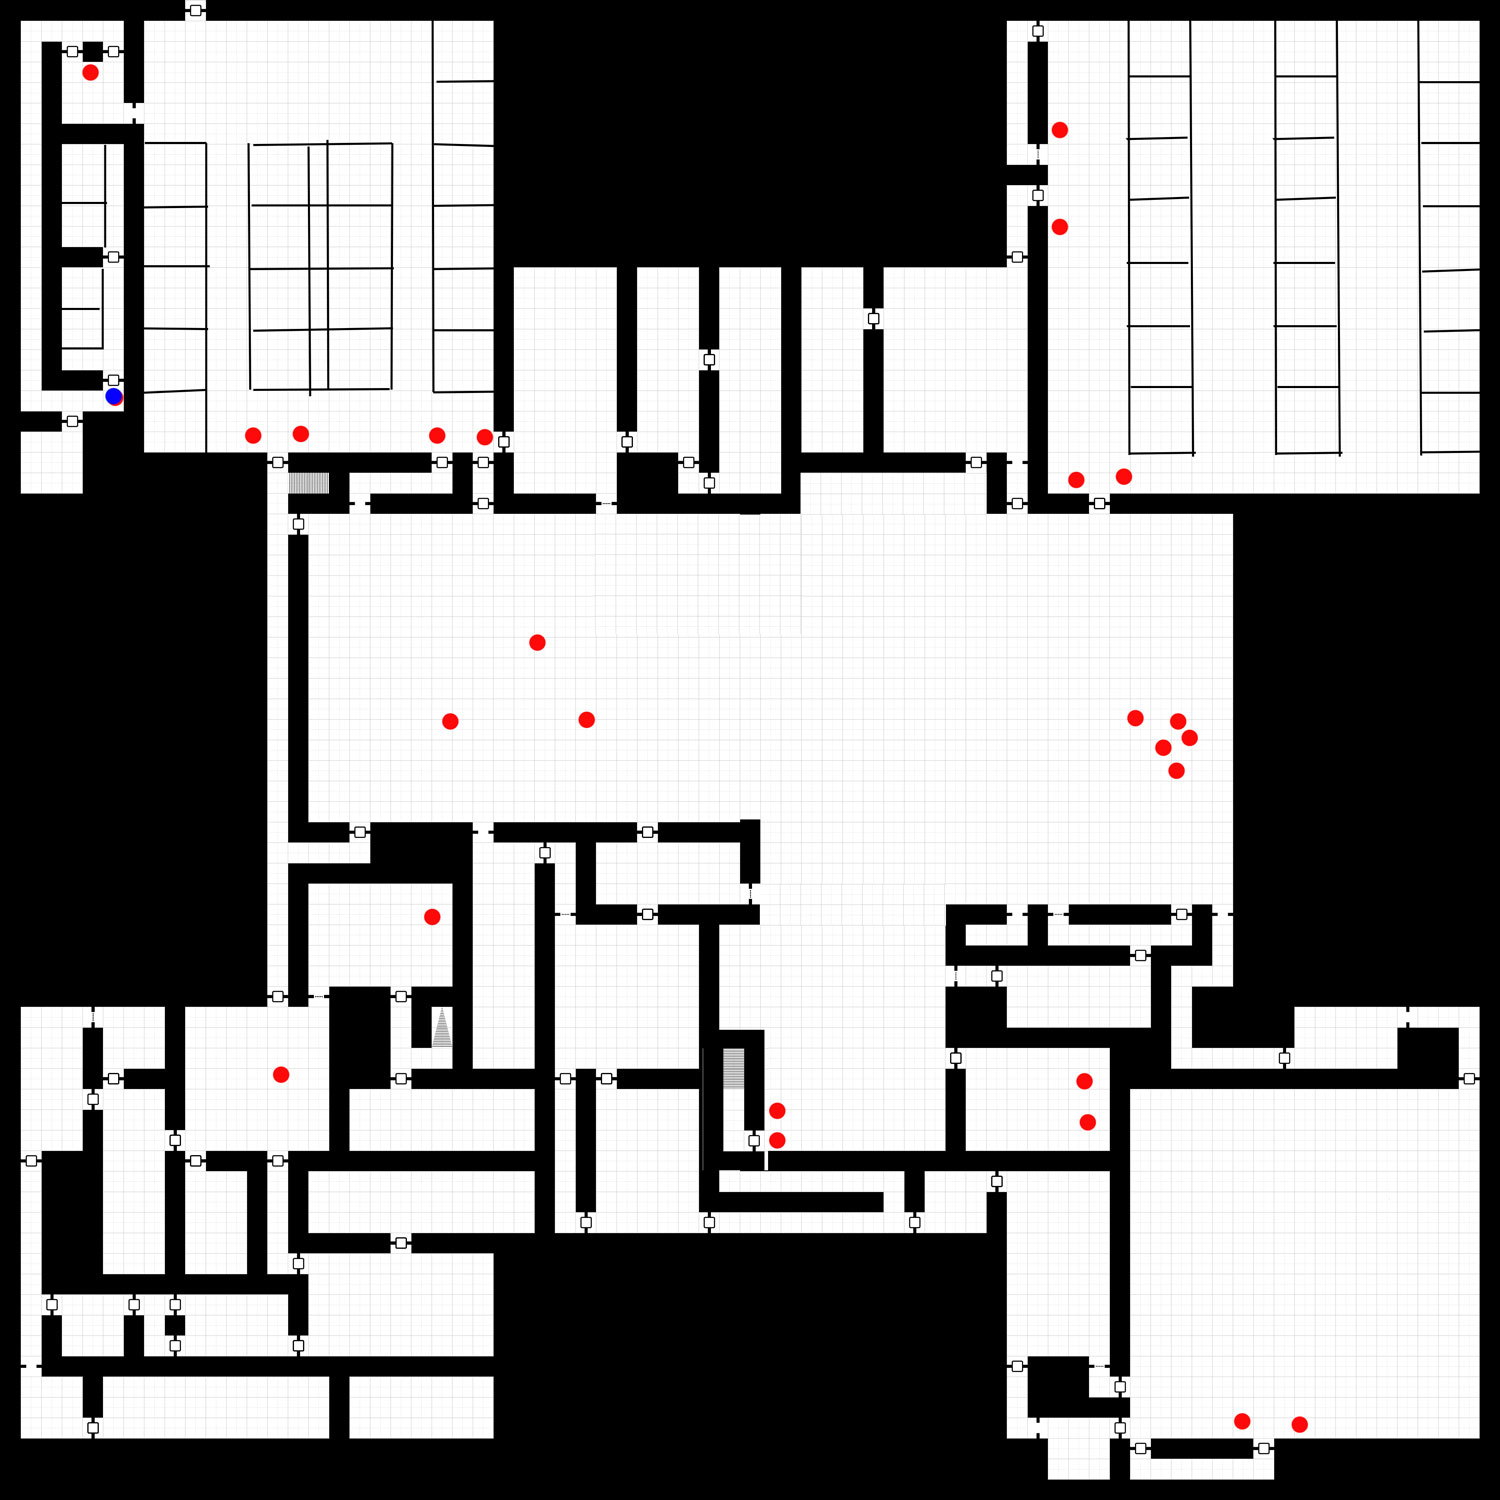 Southfort-Keep-Lower-Level-and-Cells.jpg